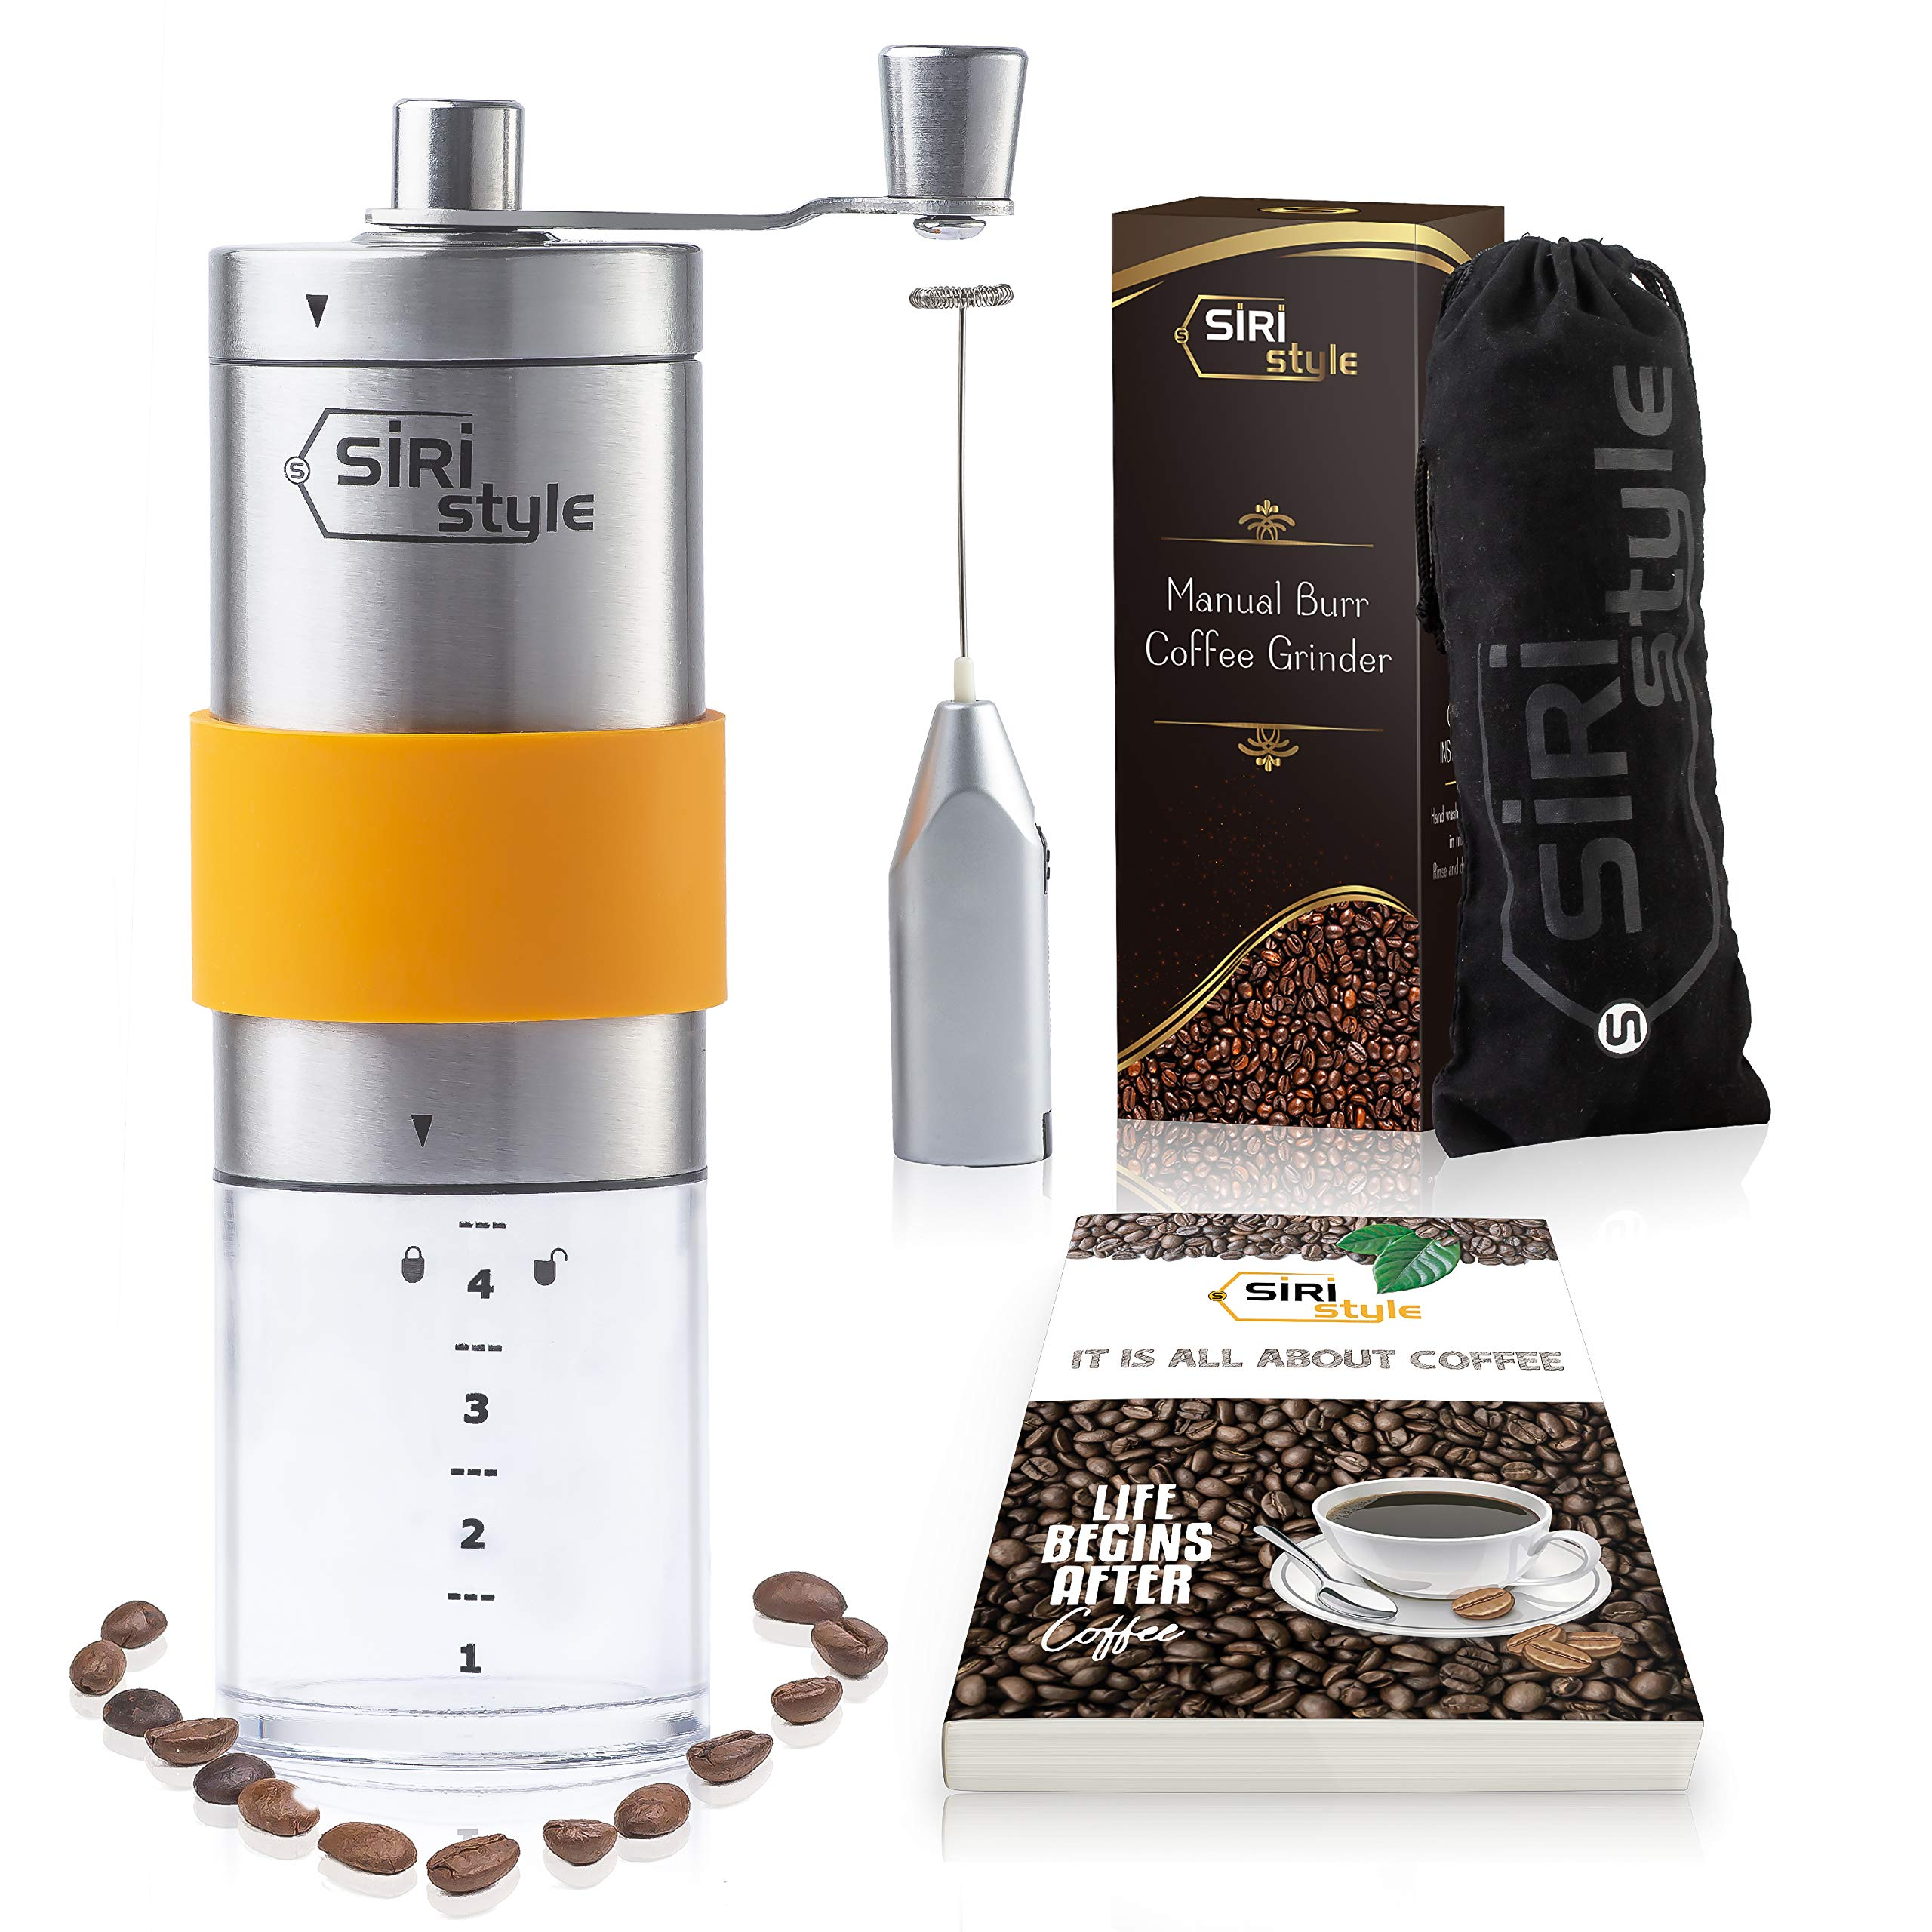 Portable Manual Coffee Grinder – Stainless Steel Coffee Bean Mill – Travel Burr Grinder – Hand Crank Coffee Grinder, Silicone Grip, Measuring Container + FREE Milk Frother, Pouch, eBook by Siristyle